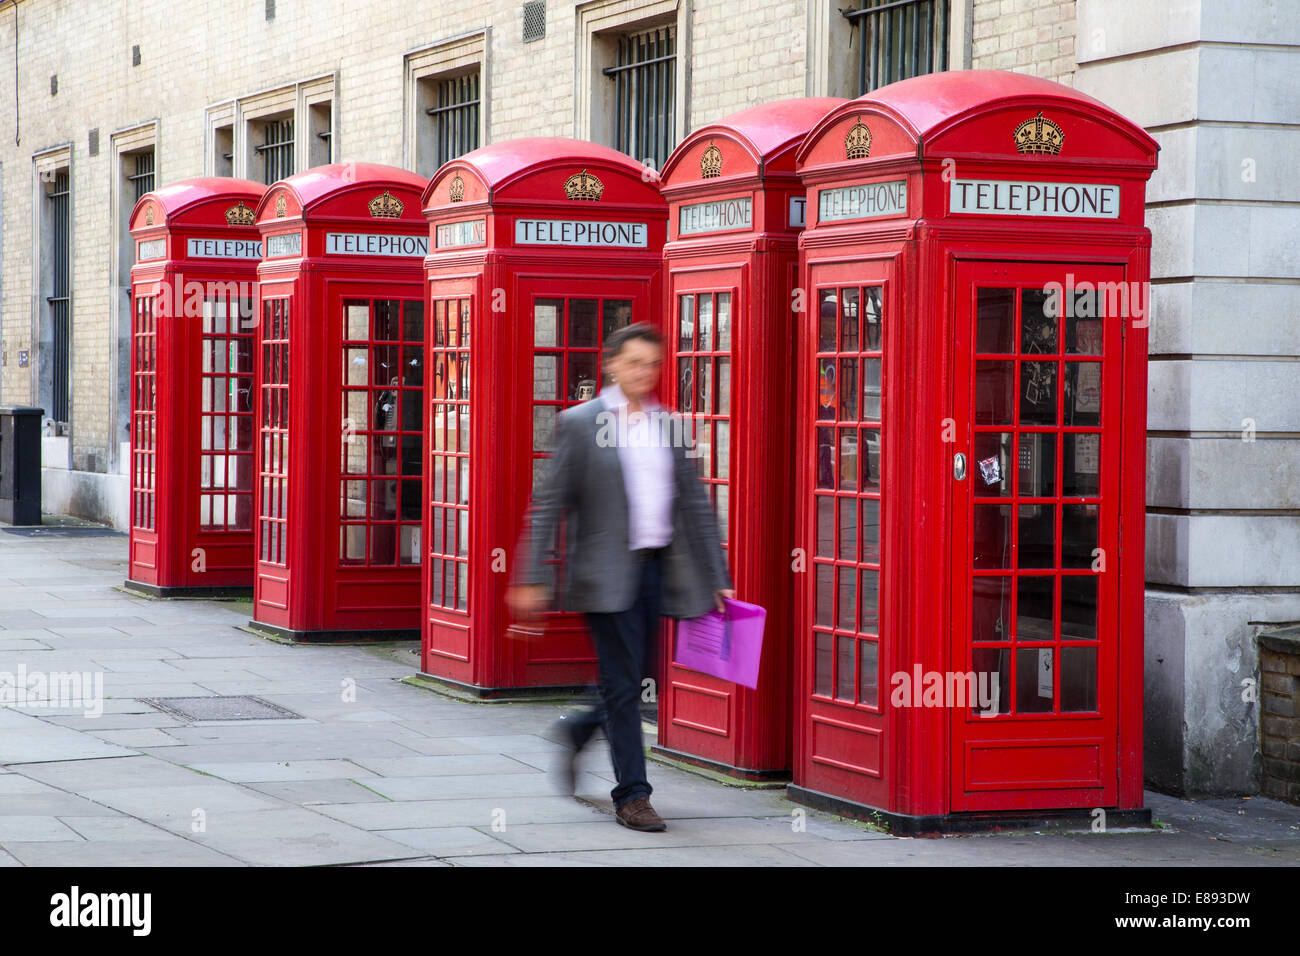 Red K2 Telephone Boxes designed by Sir Giles Gilbert Scott Broad Court,Covent Garden - Stock Image